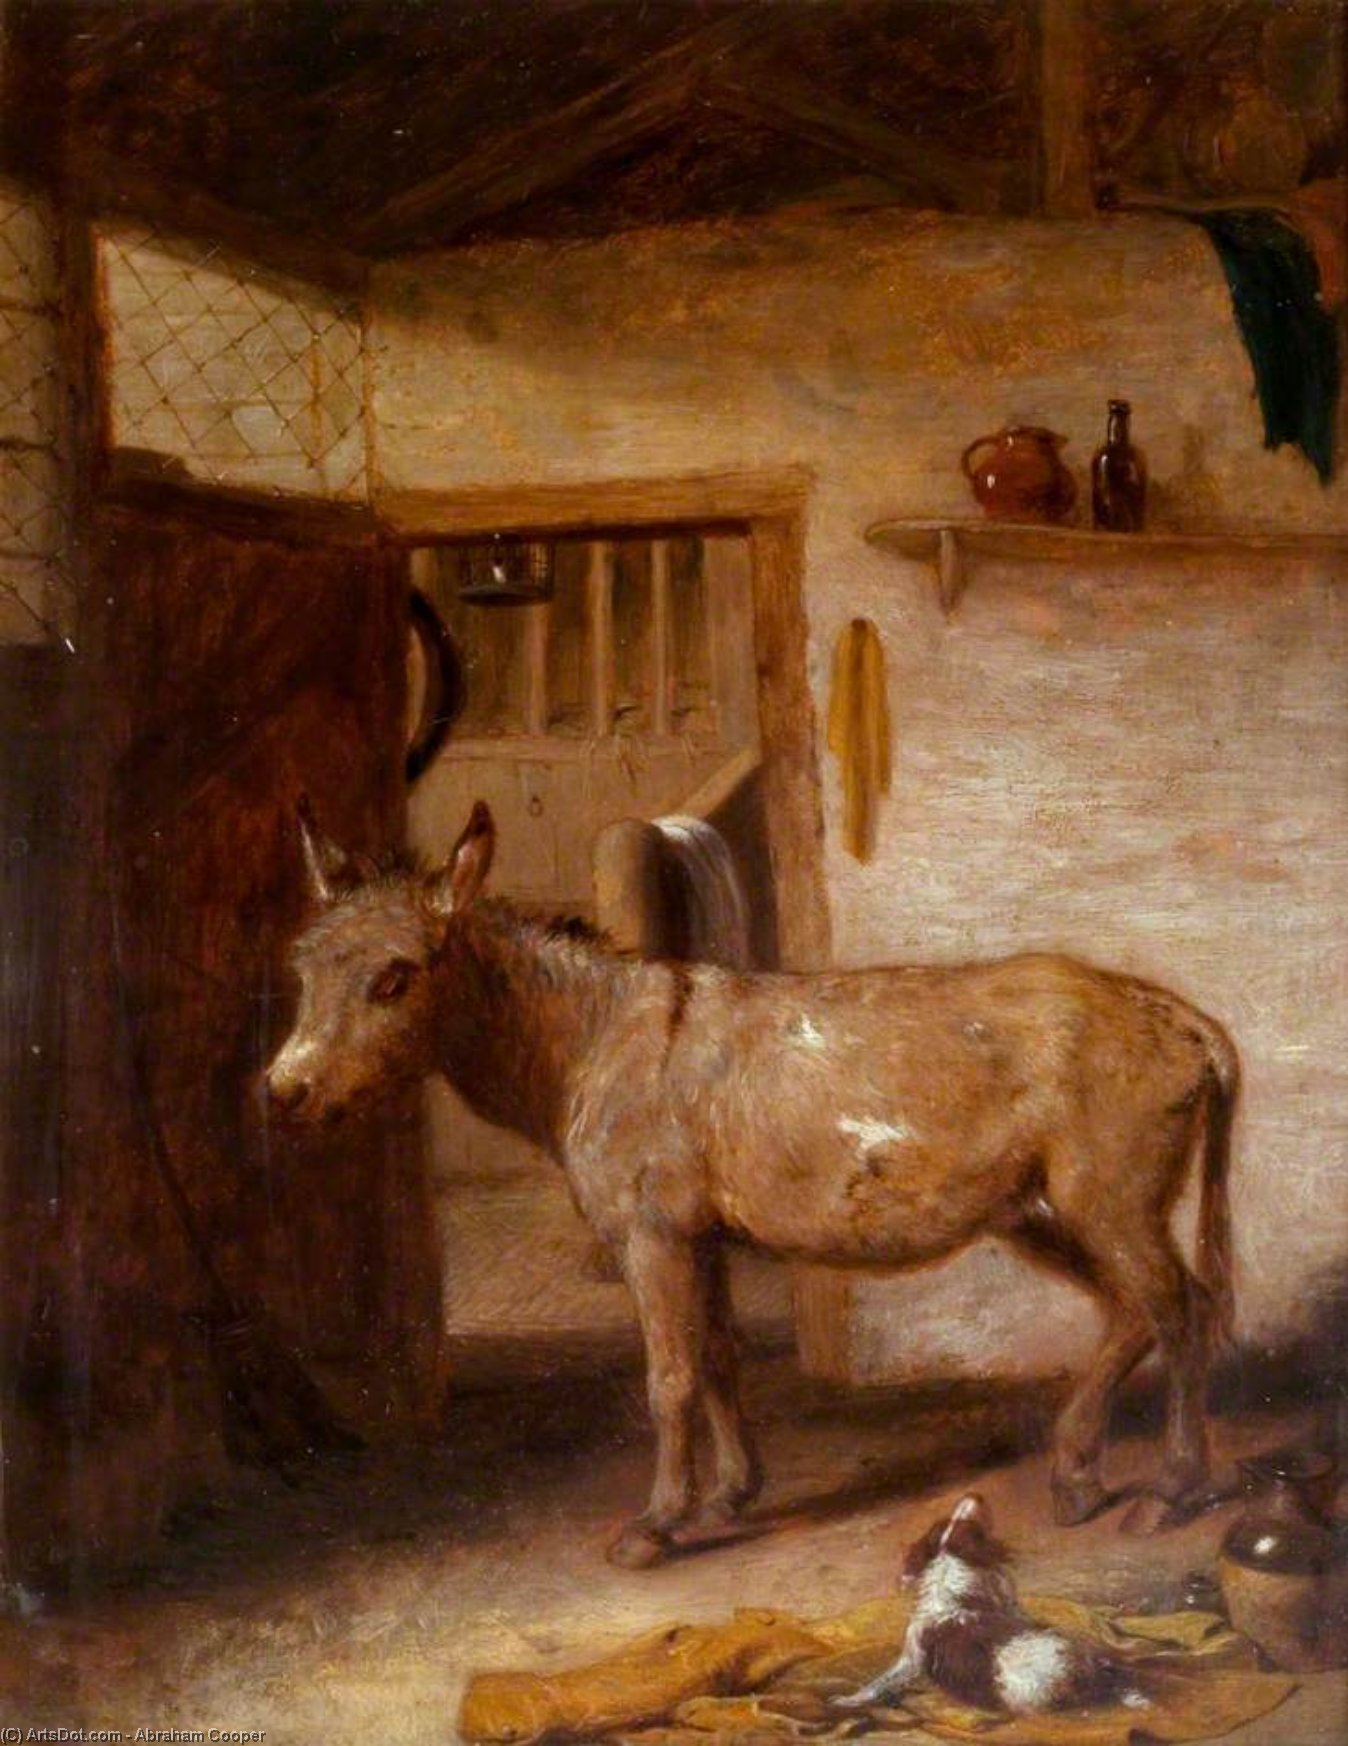 A Donkey And A Spaniel In A Stable by Abraham Cooper (1787-1868, United Kingdom)